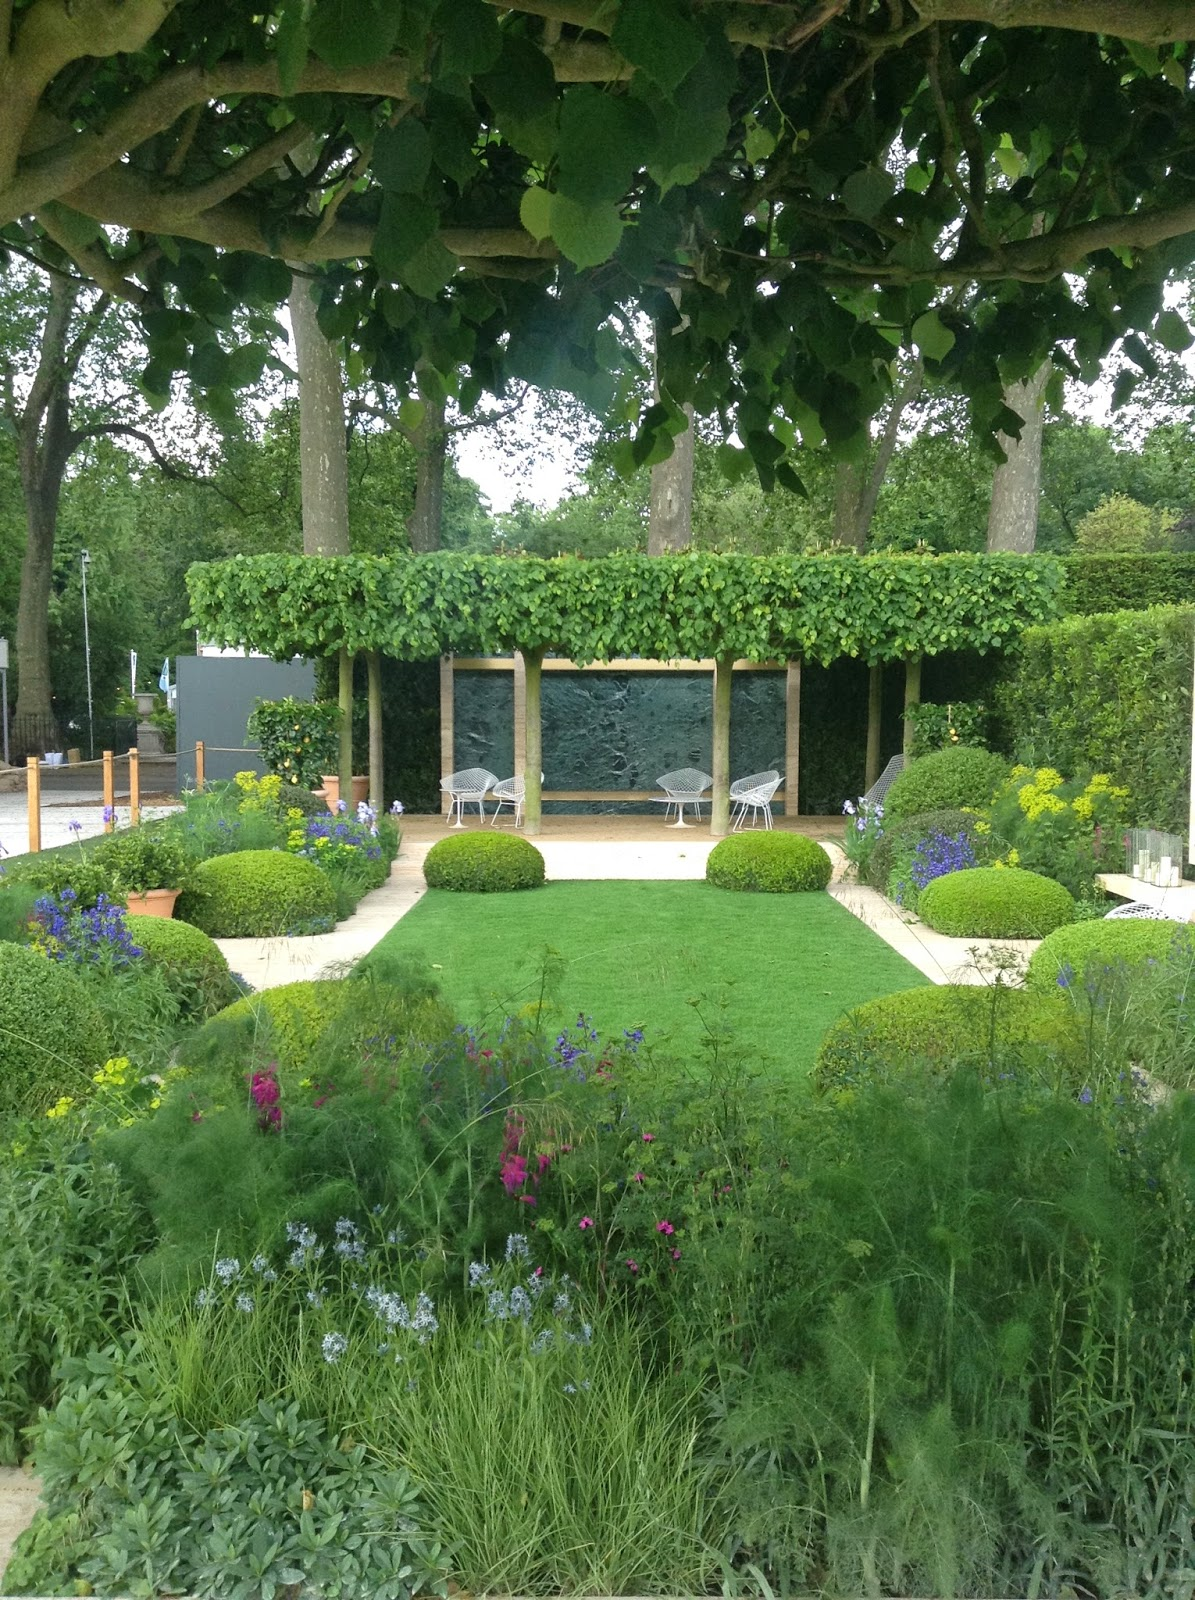 RHS Chelsea Flower Show 2014 - Tommaso Del Buono & Paul Gazerwits's Telegraph Garden - Gold Medal - Photo by Noemi Mercurelli